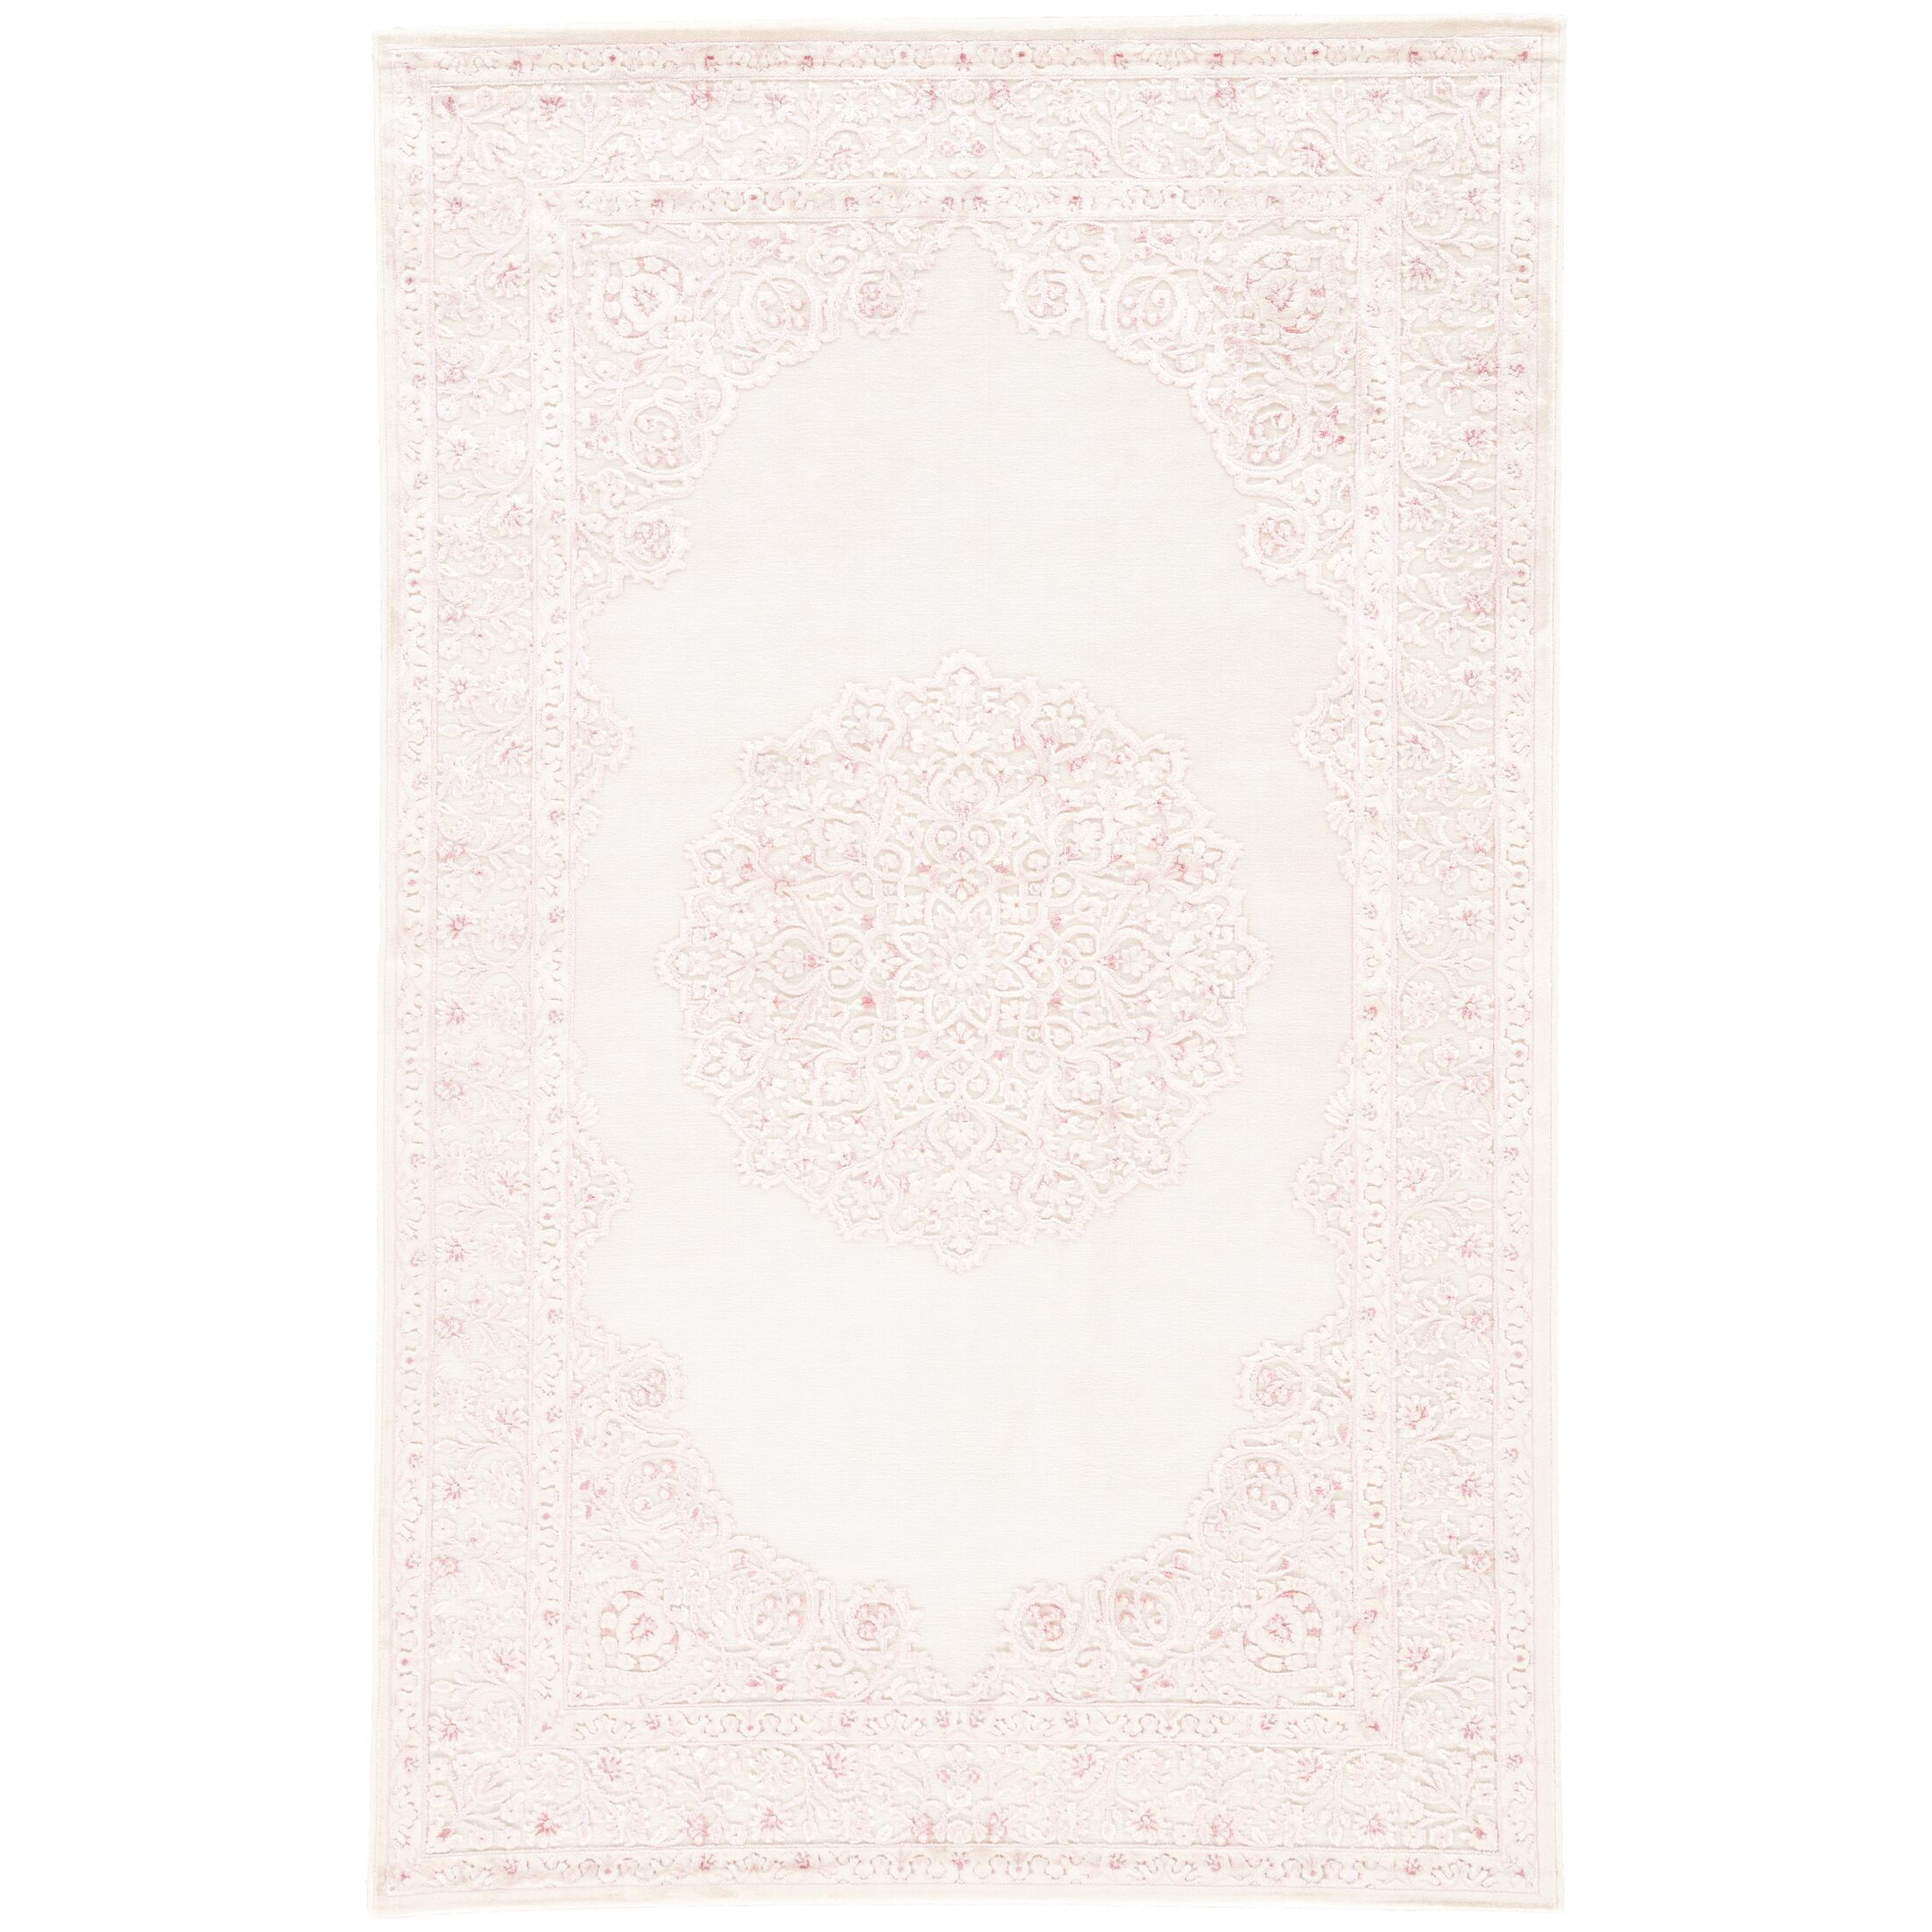 Fontanne Machine-Woven Chenille Ivory/Baby Pink Area Rug Rug Size: Runner 2'6